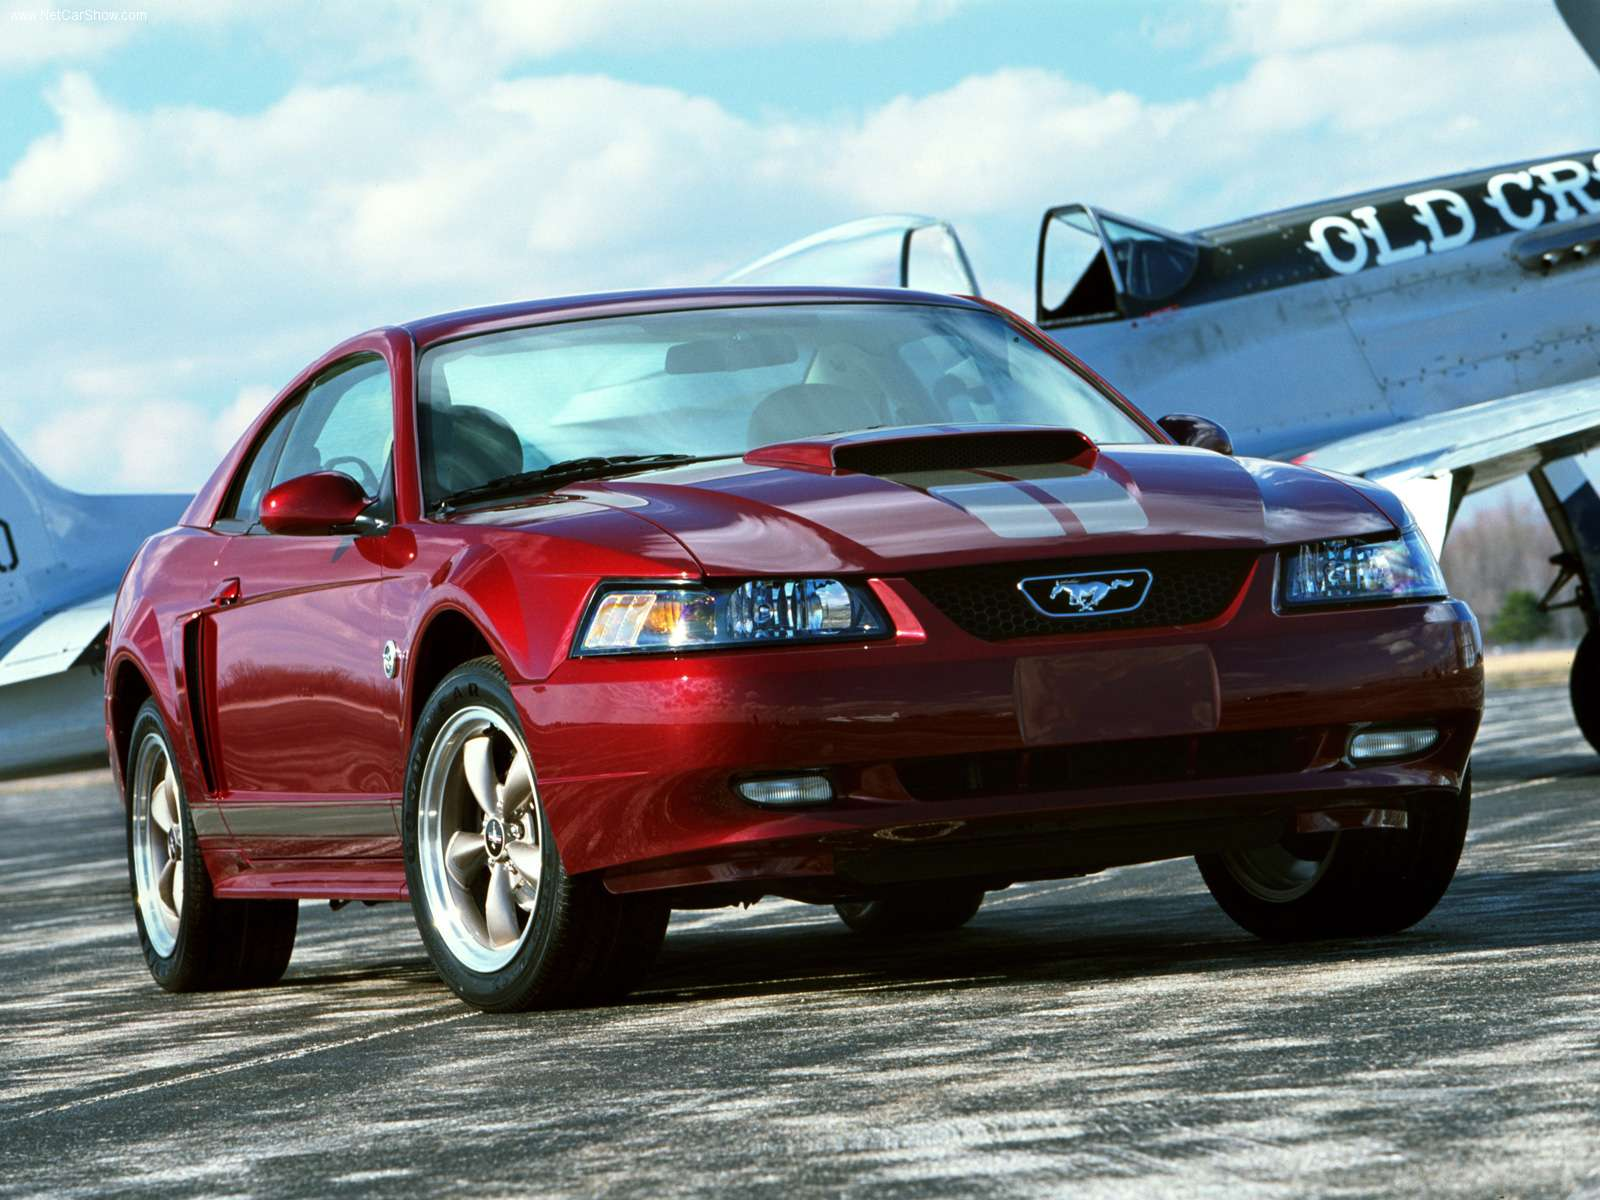 Ford Mustang Ford Mustang Bullitt Ford Mustang Shelby Gt Blog Archive Ford Mustang 40th Anniversary 2004 01